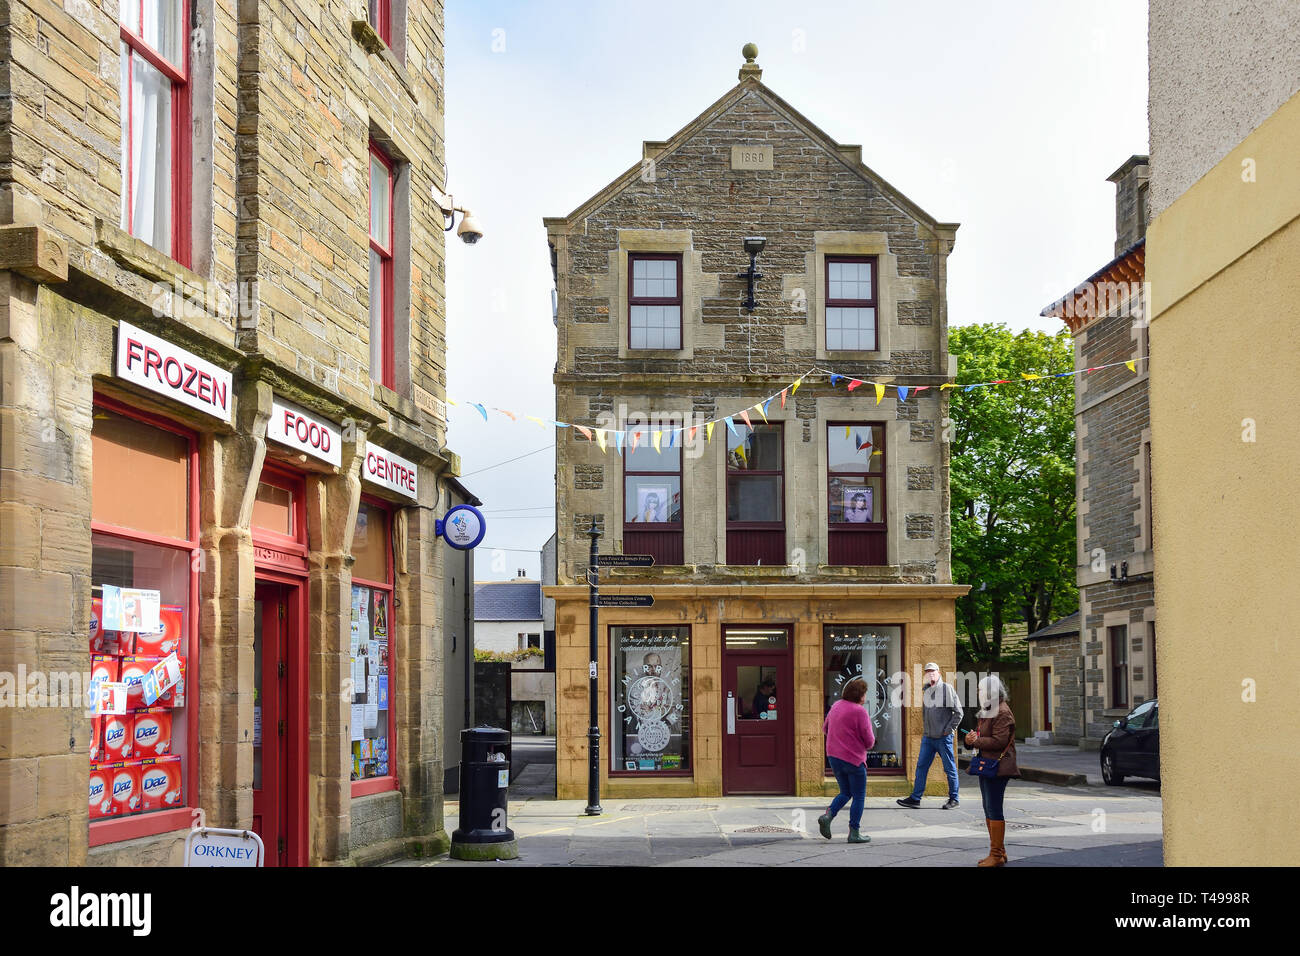 Albert Street, Kirkwall, The Mainland, Orkney Islands, Northern Isles, Scotland, United Kingdom Stock Photo